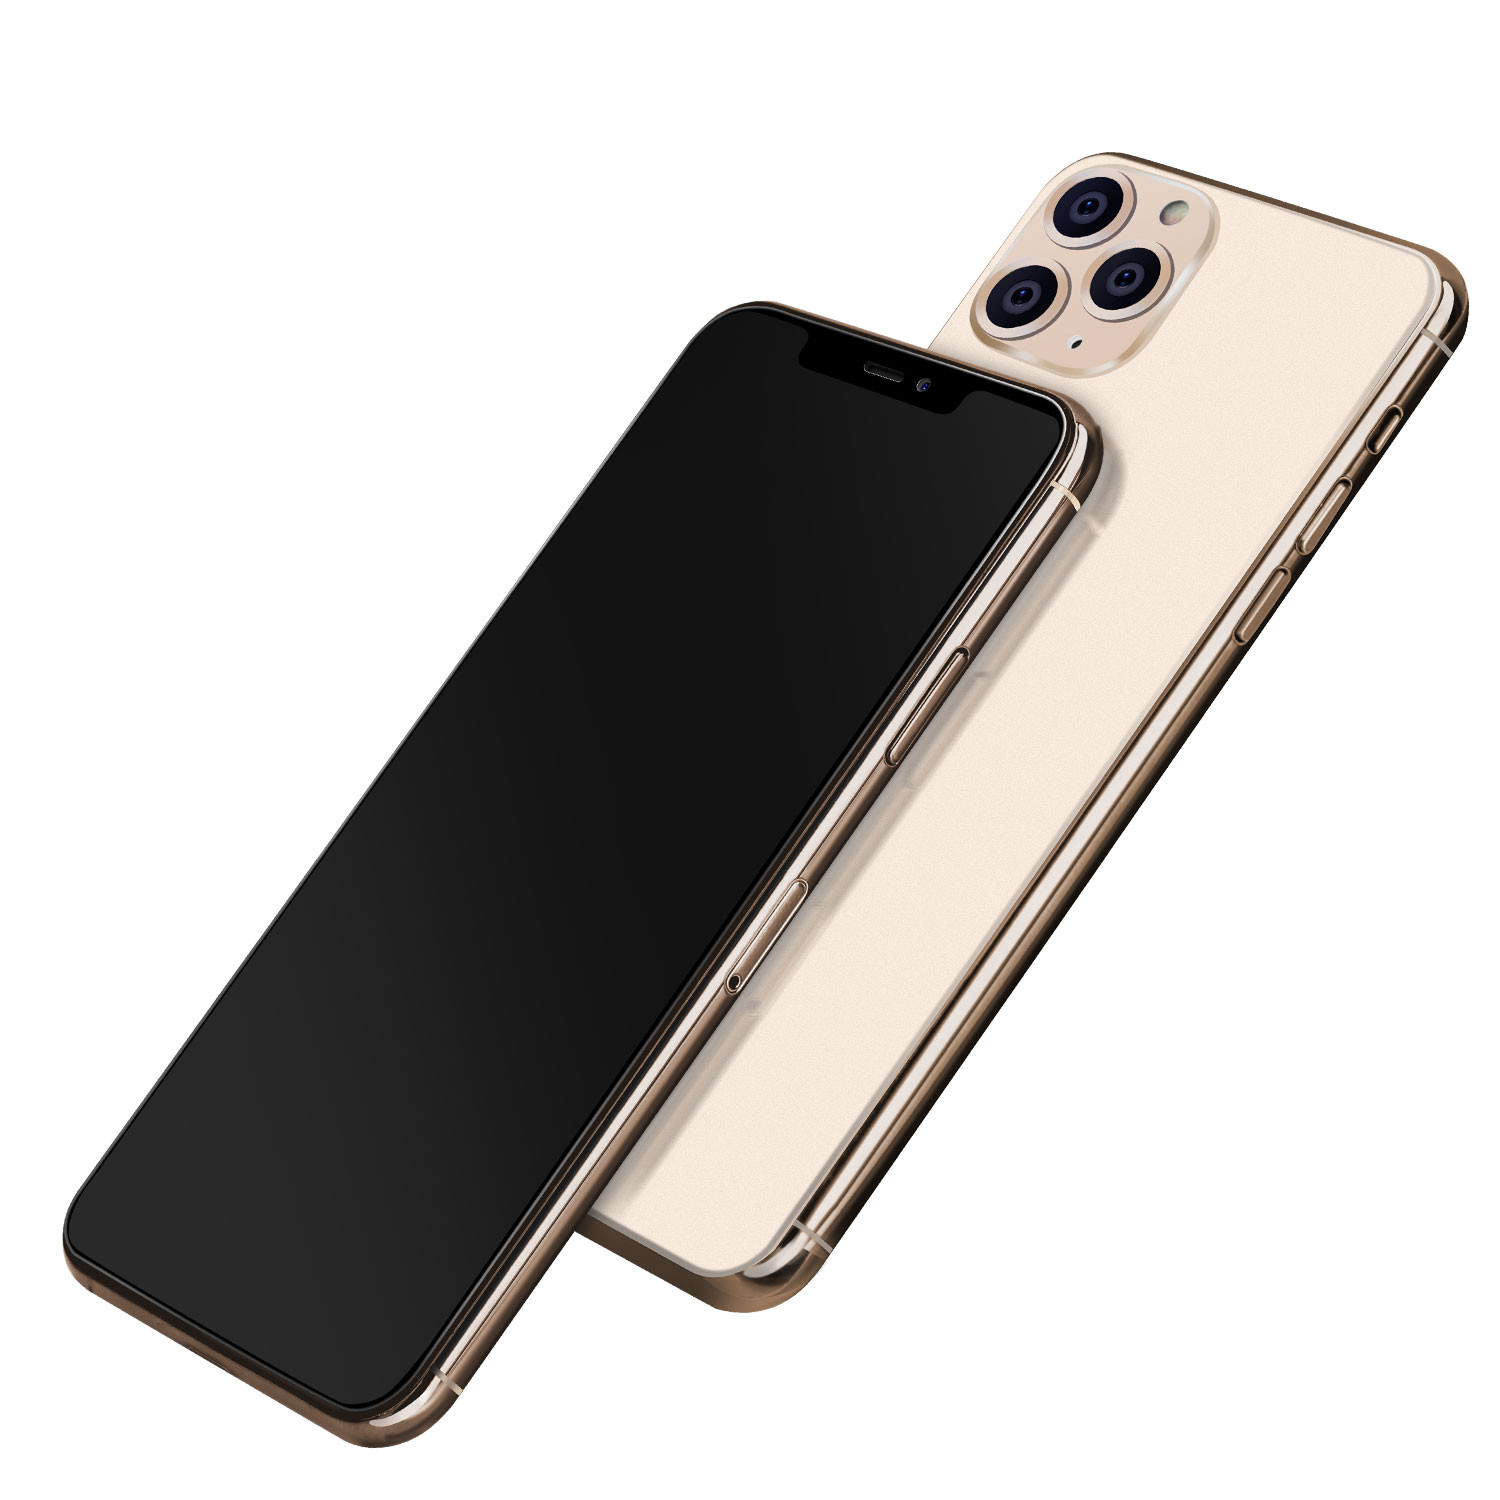 Dummy Model For 2019 Phone11 Pro Max Fake Dummy Phone Model Only For Display And Black Screen & Other Model Non-Working